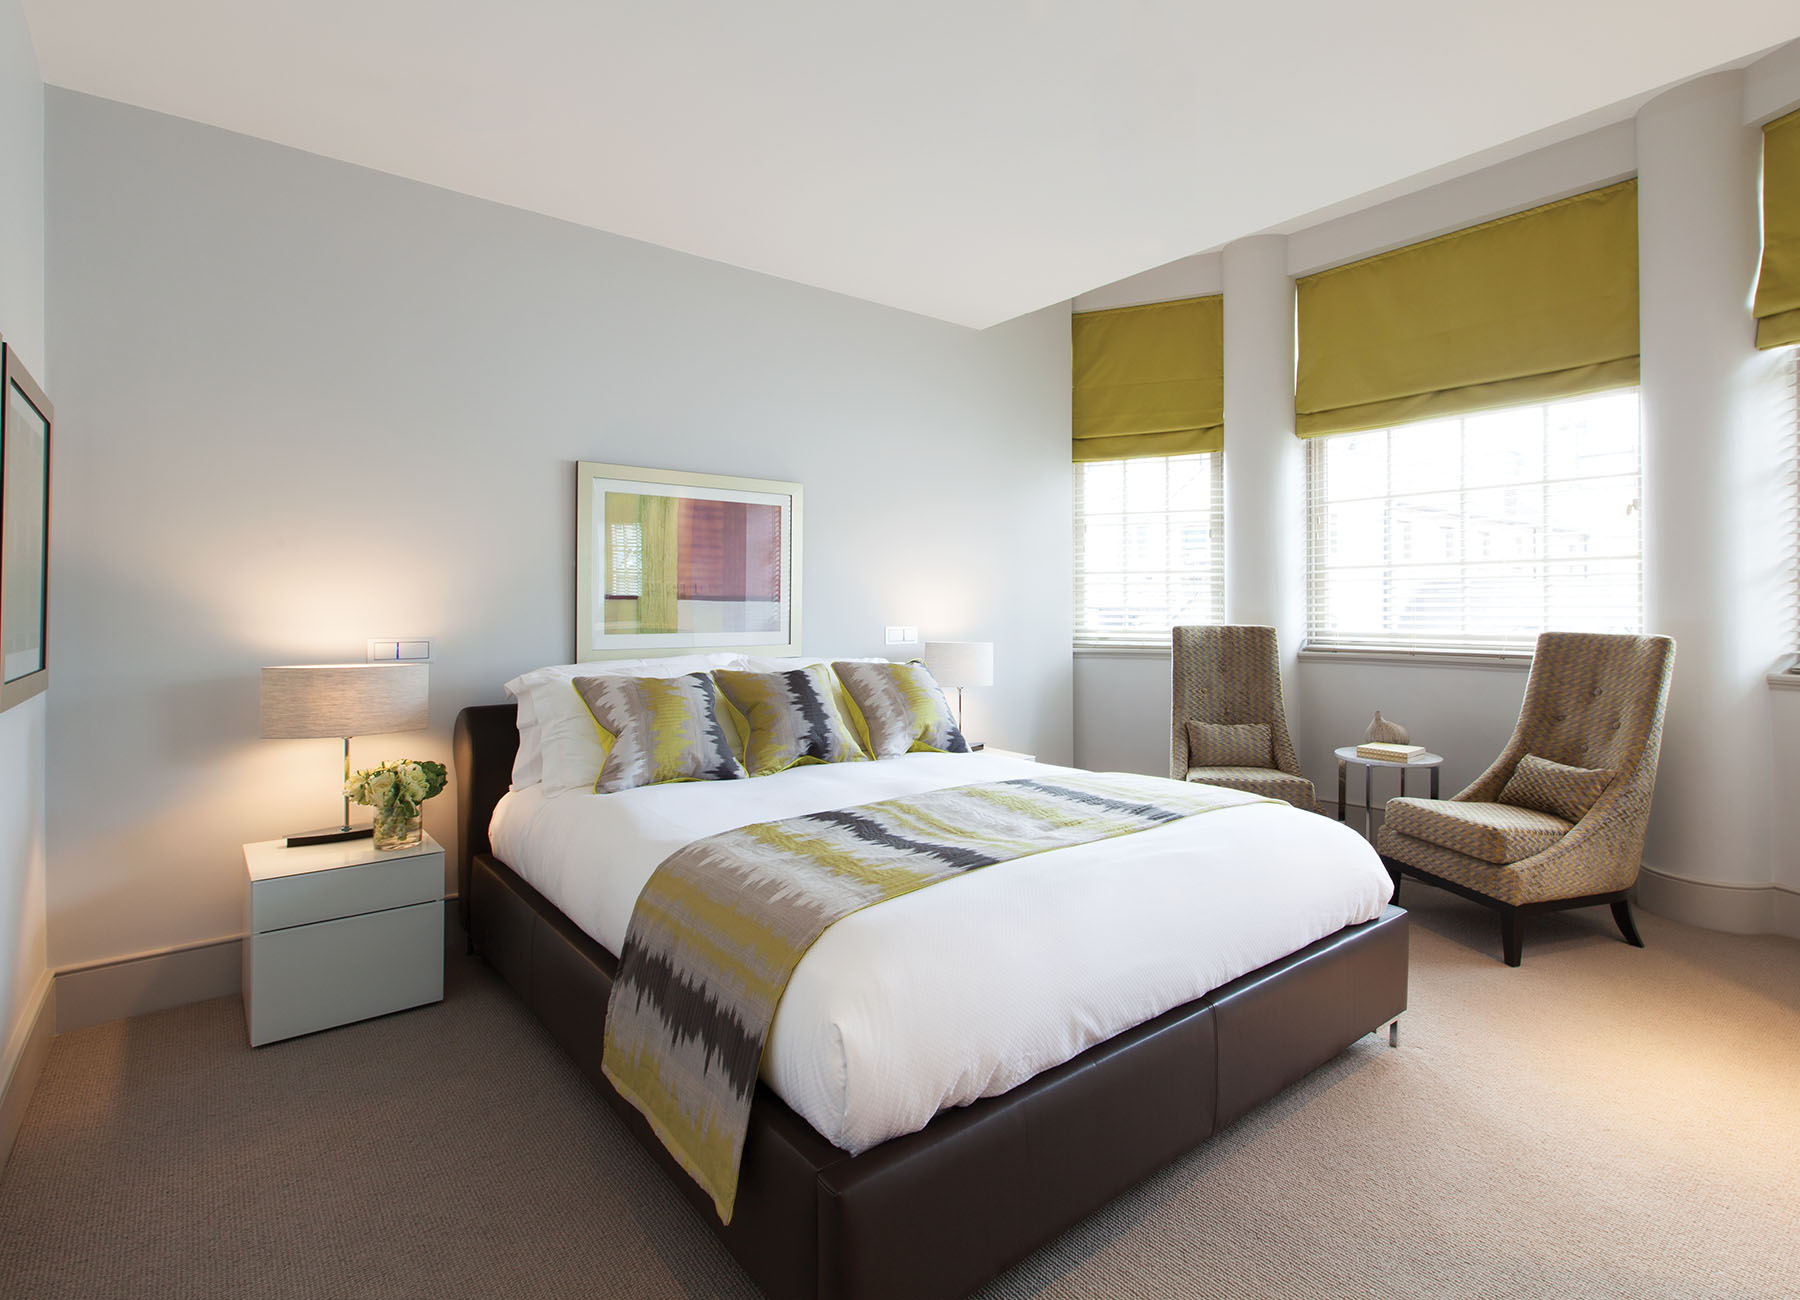 Bedroom with yellow blinds and king bed